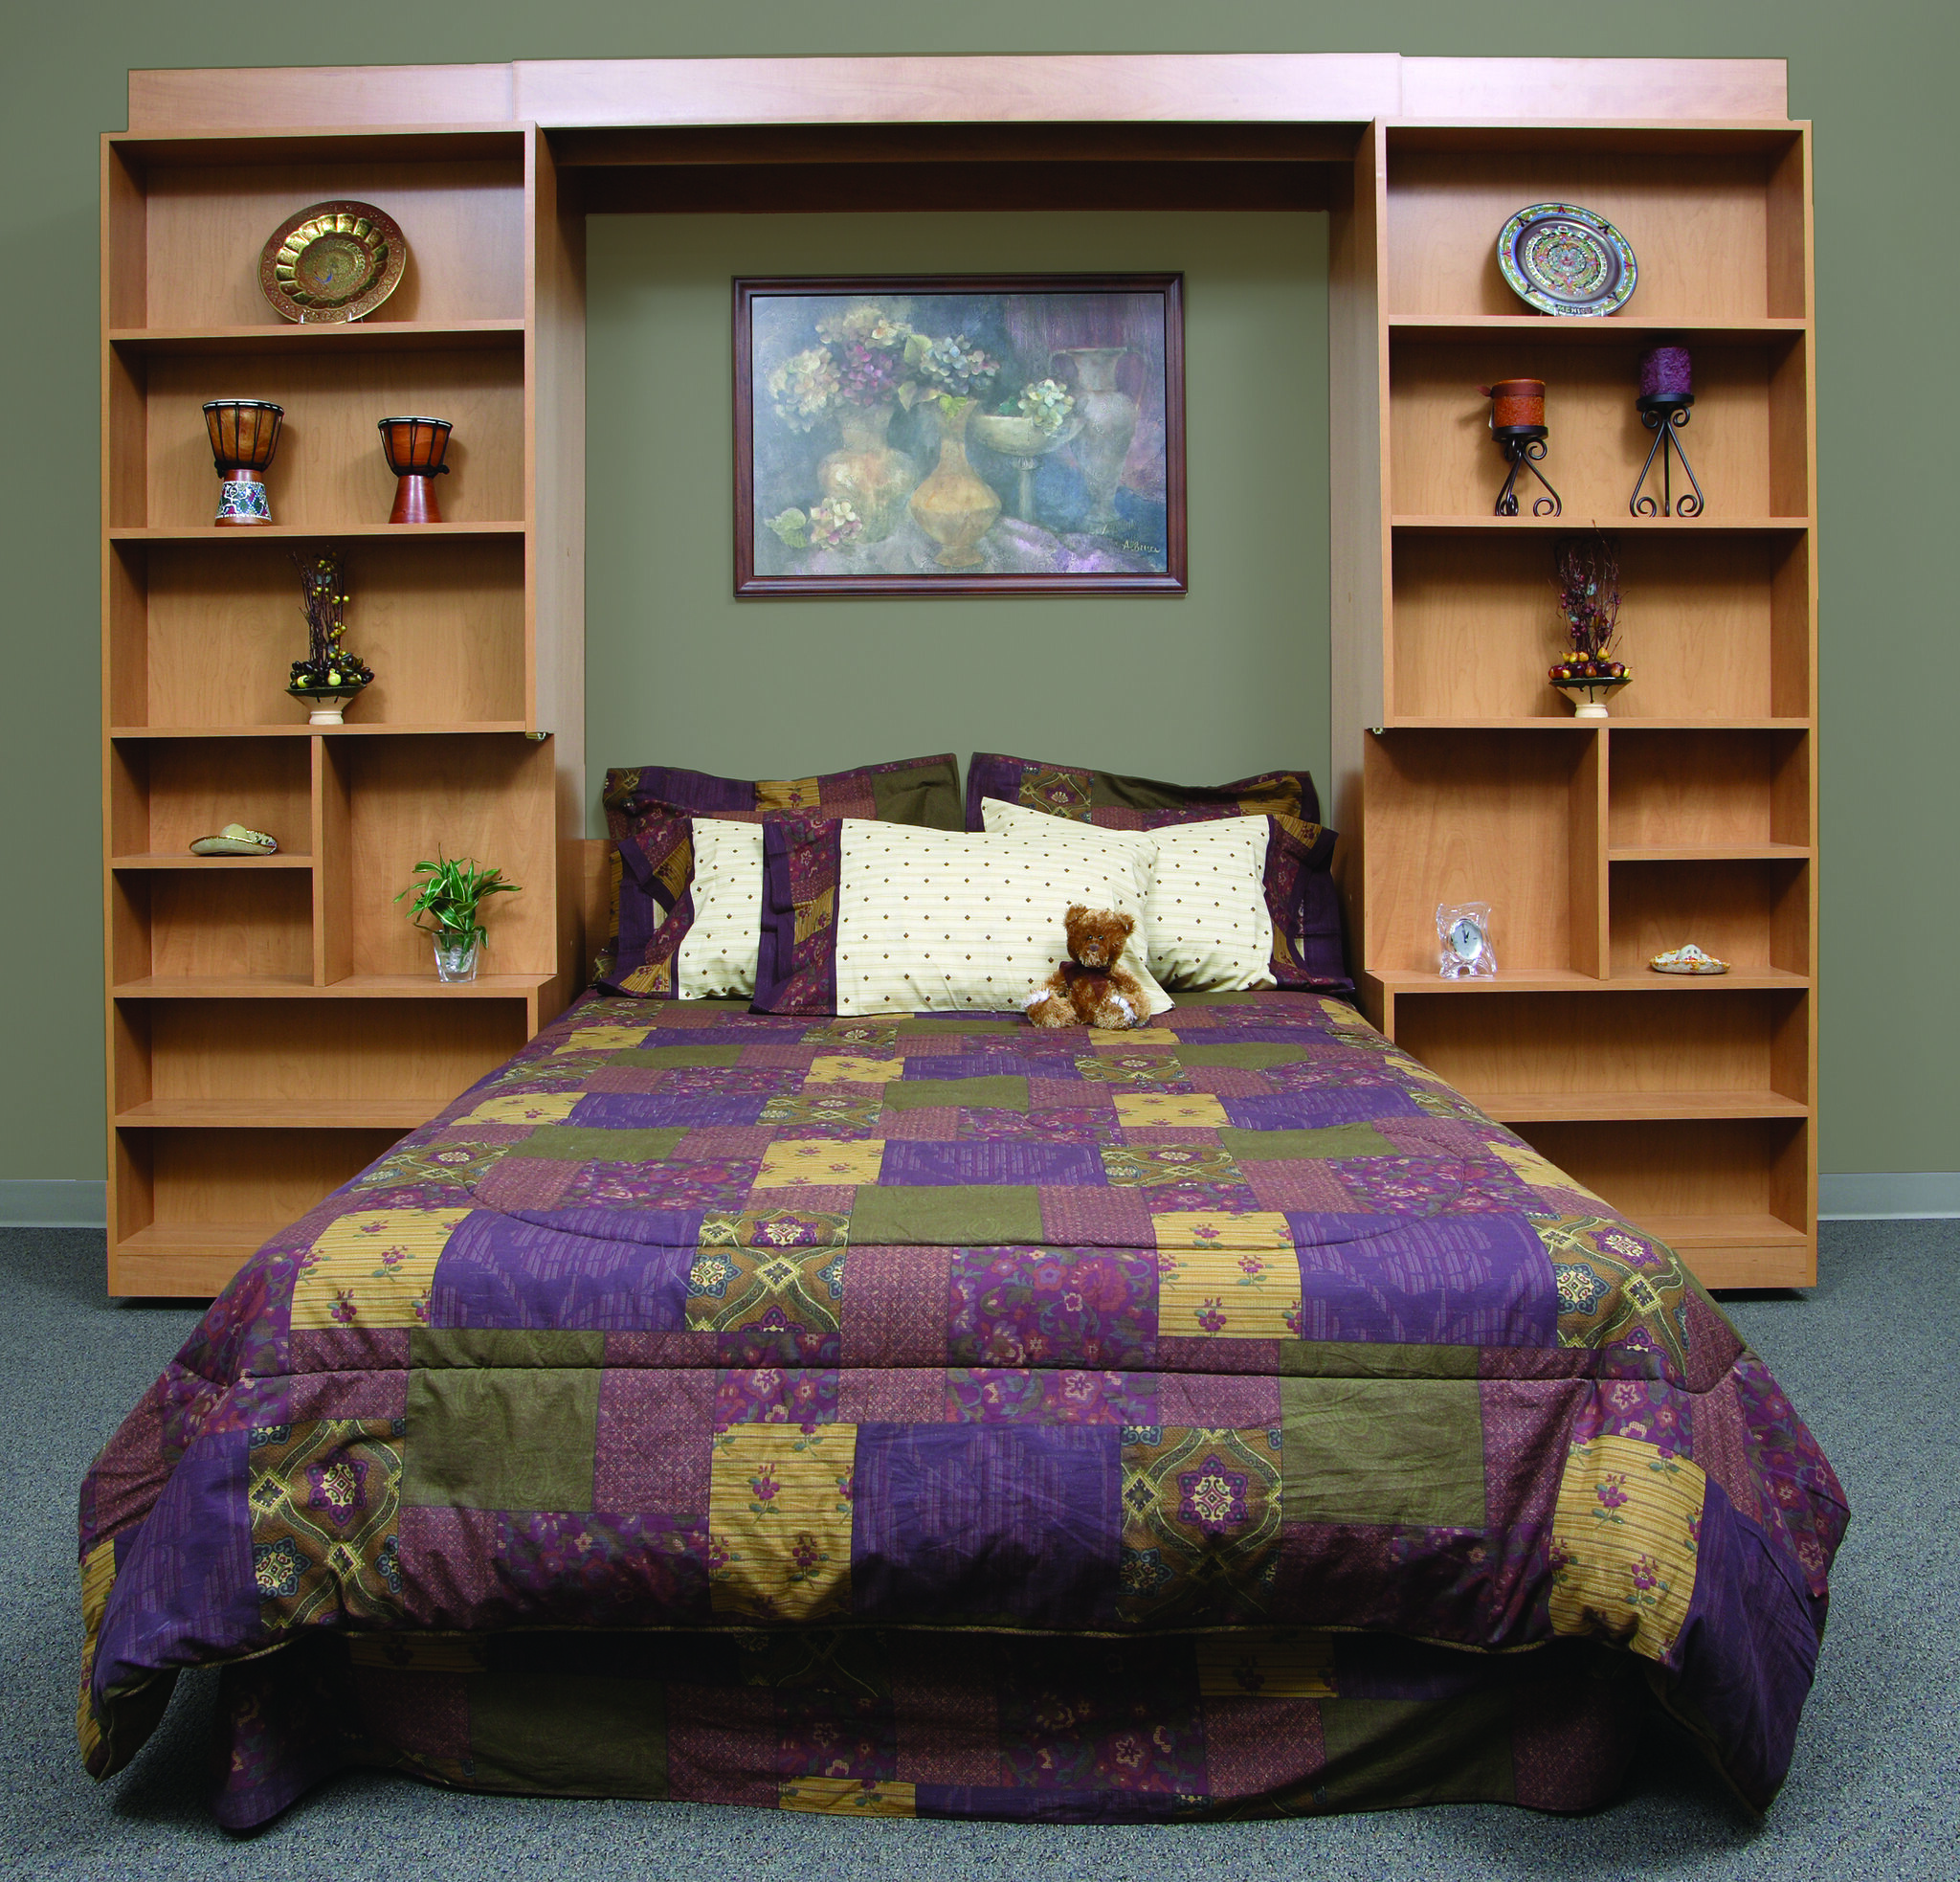 Murphy bed and shelves